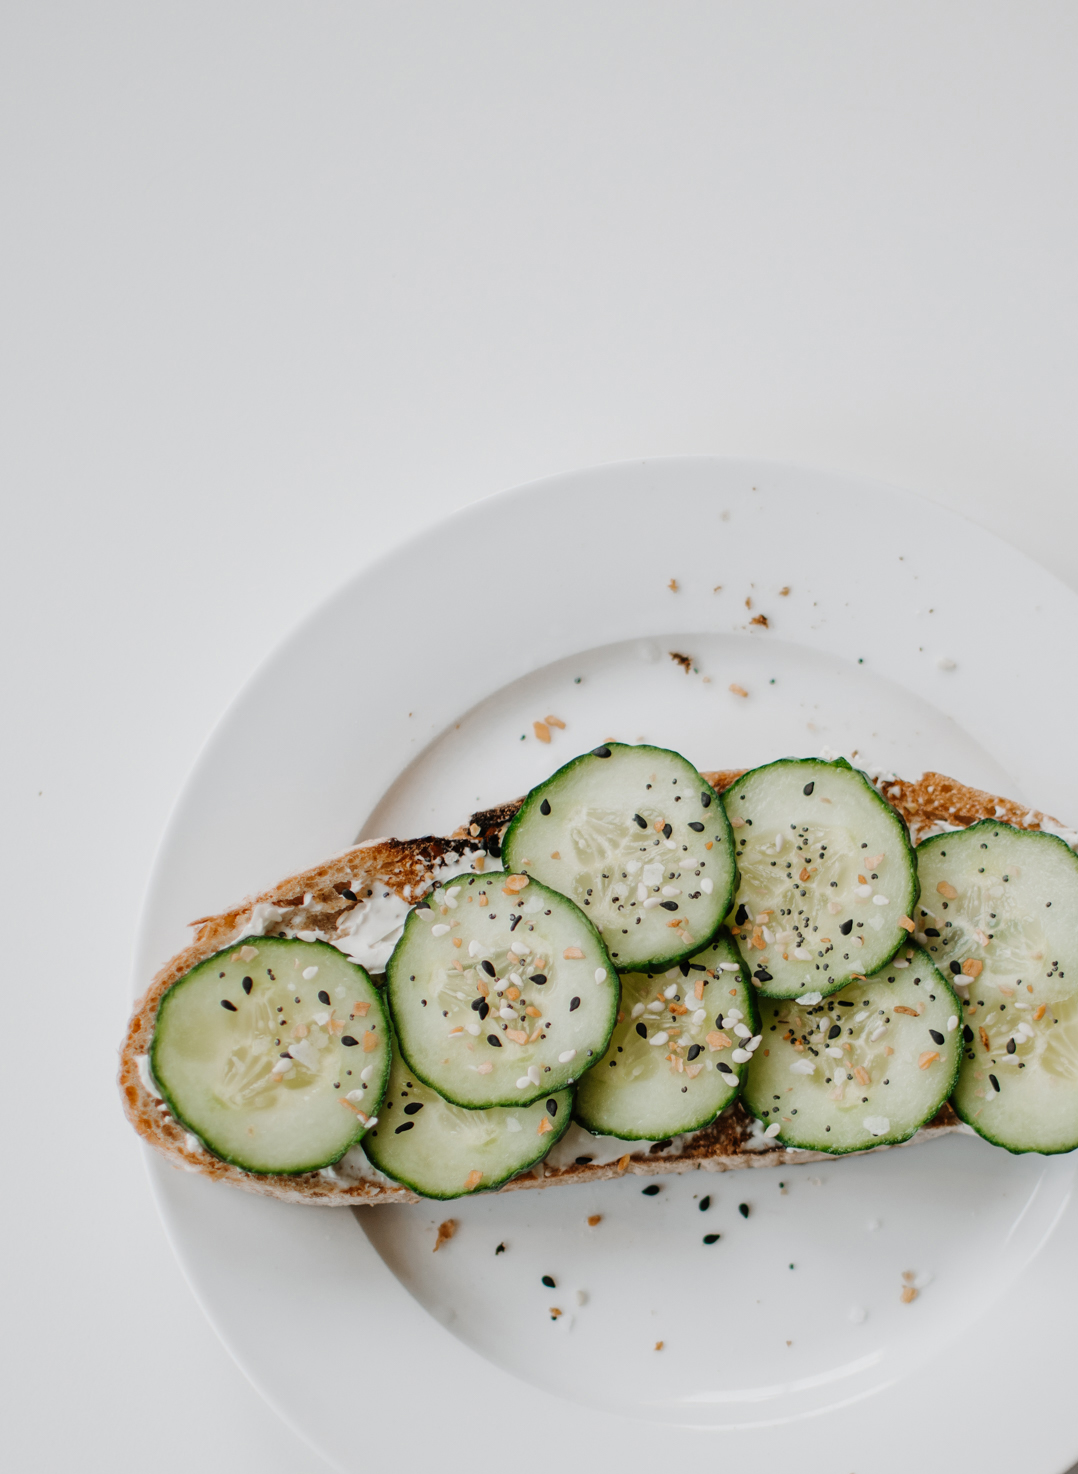 work from home lunch ideas - veggie and spread toast combinations